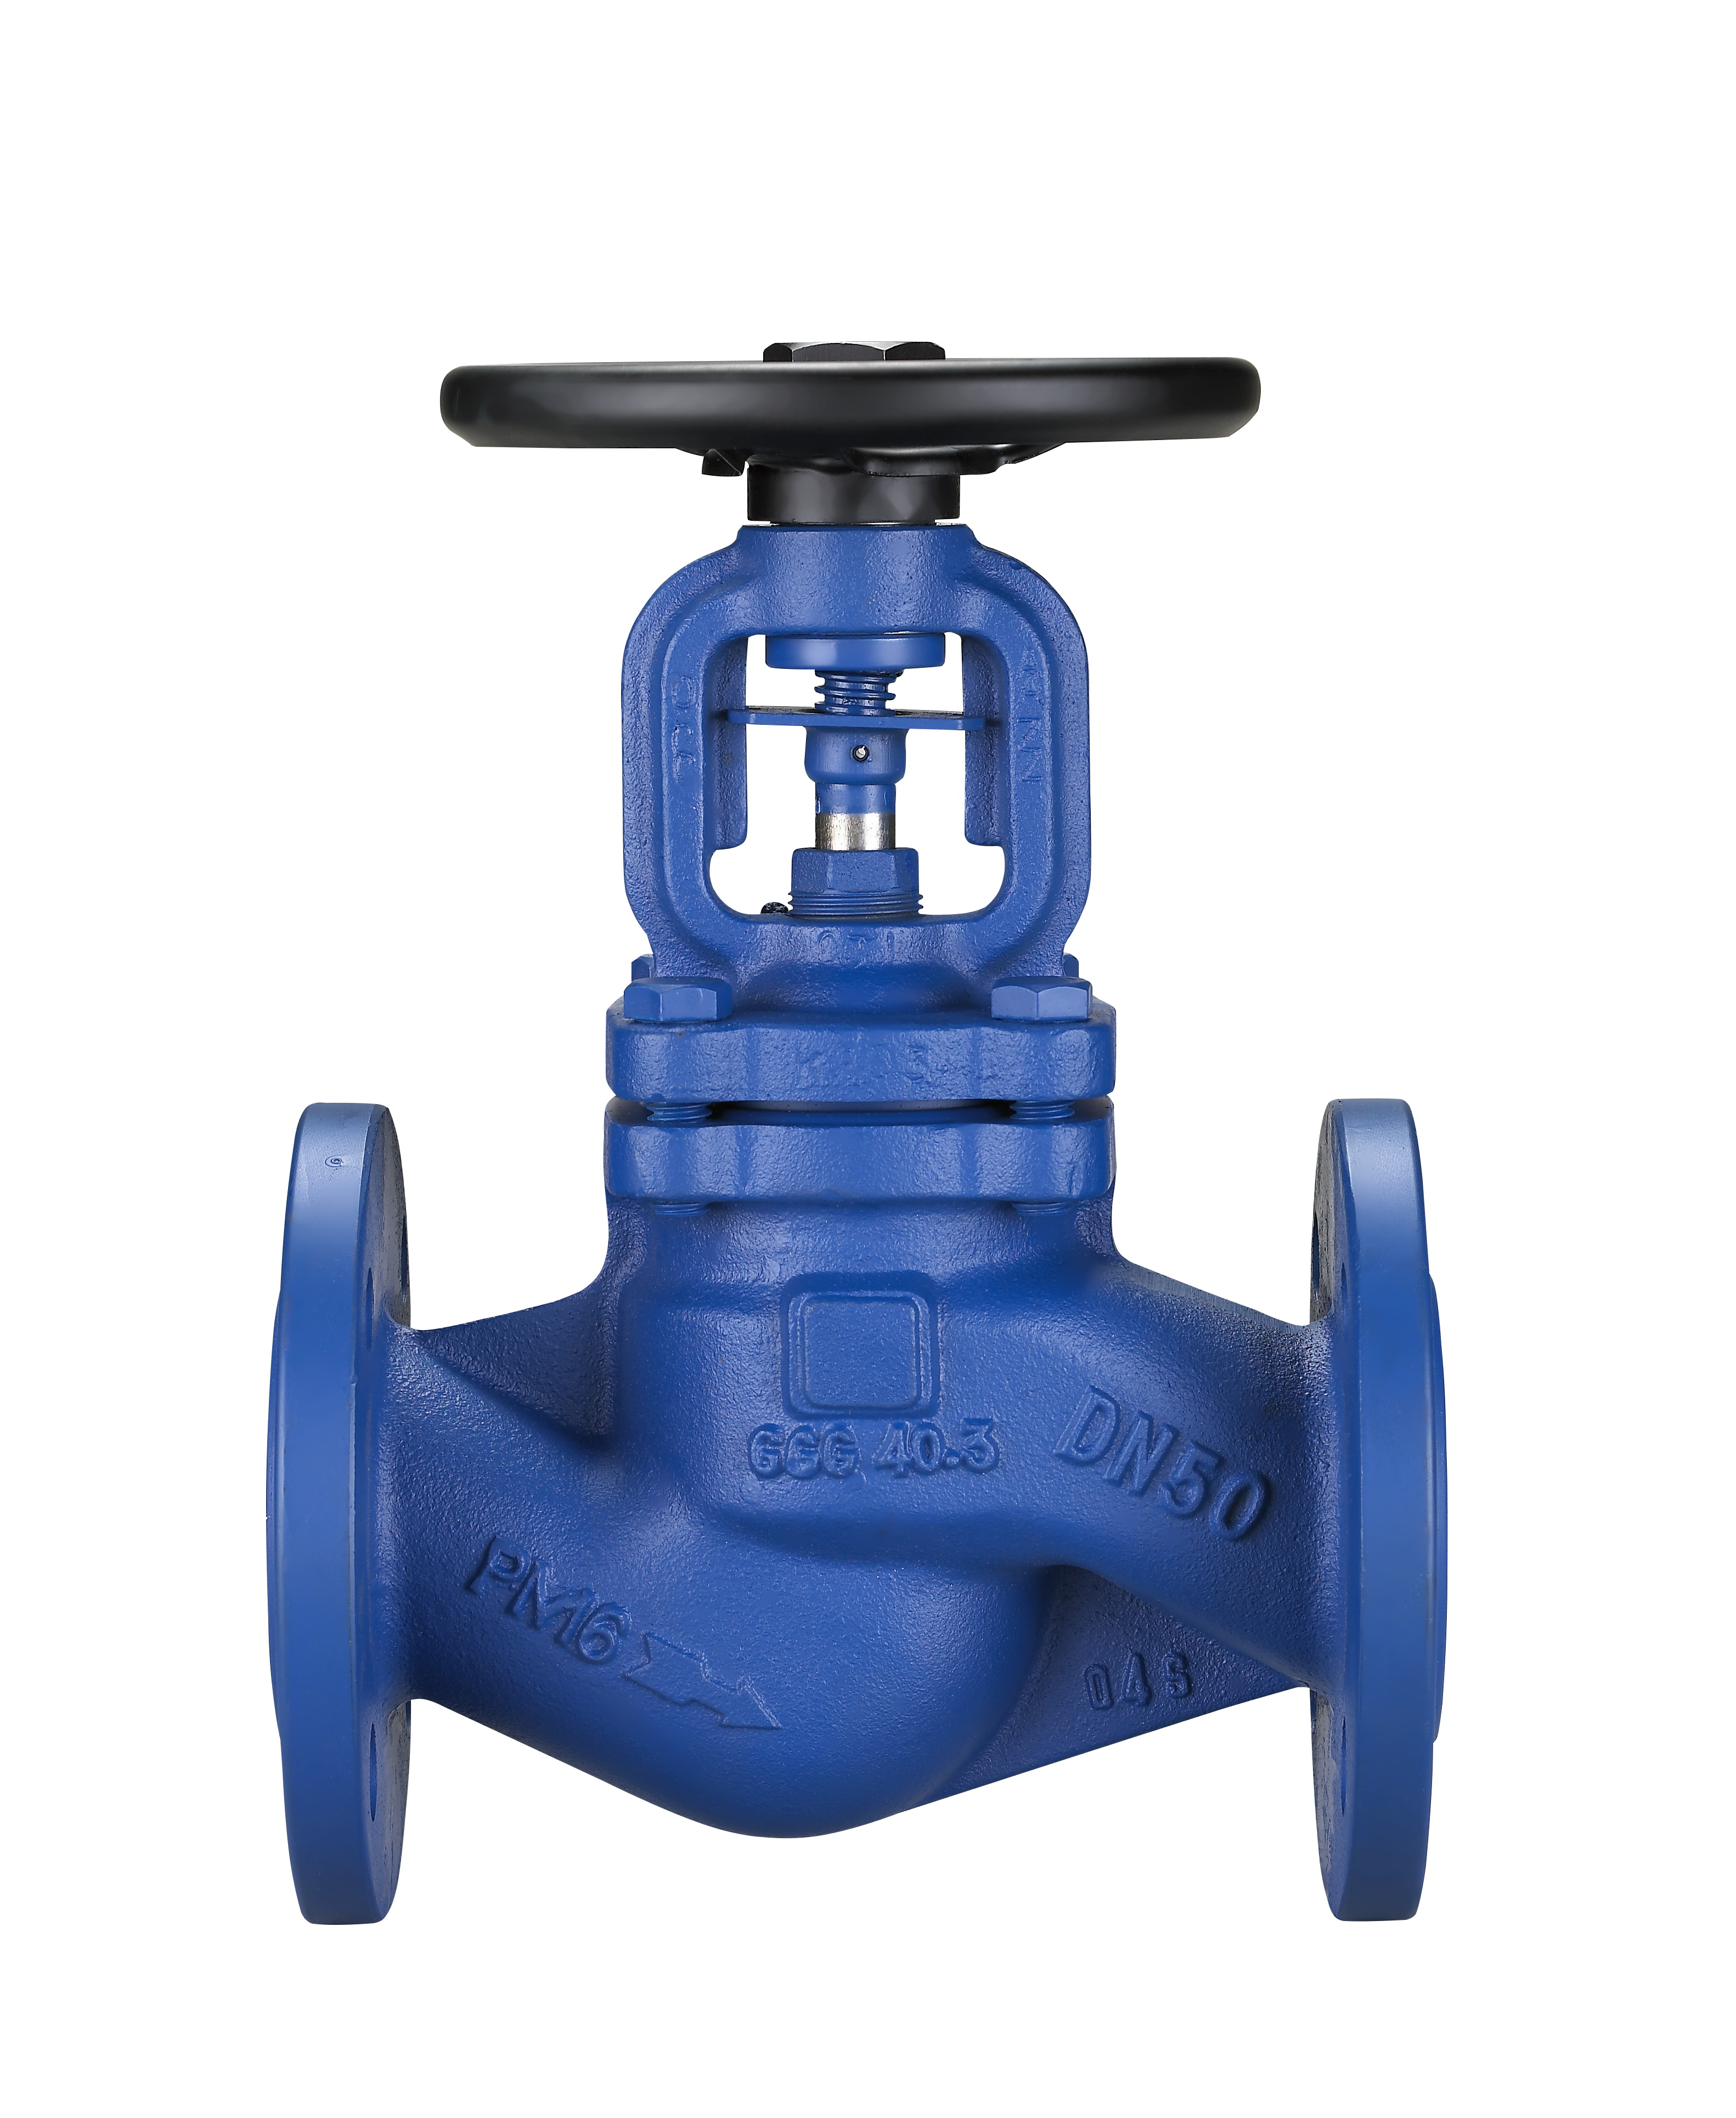 SOCLA : Products list of Ball check valves